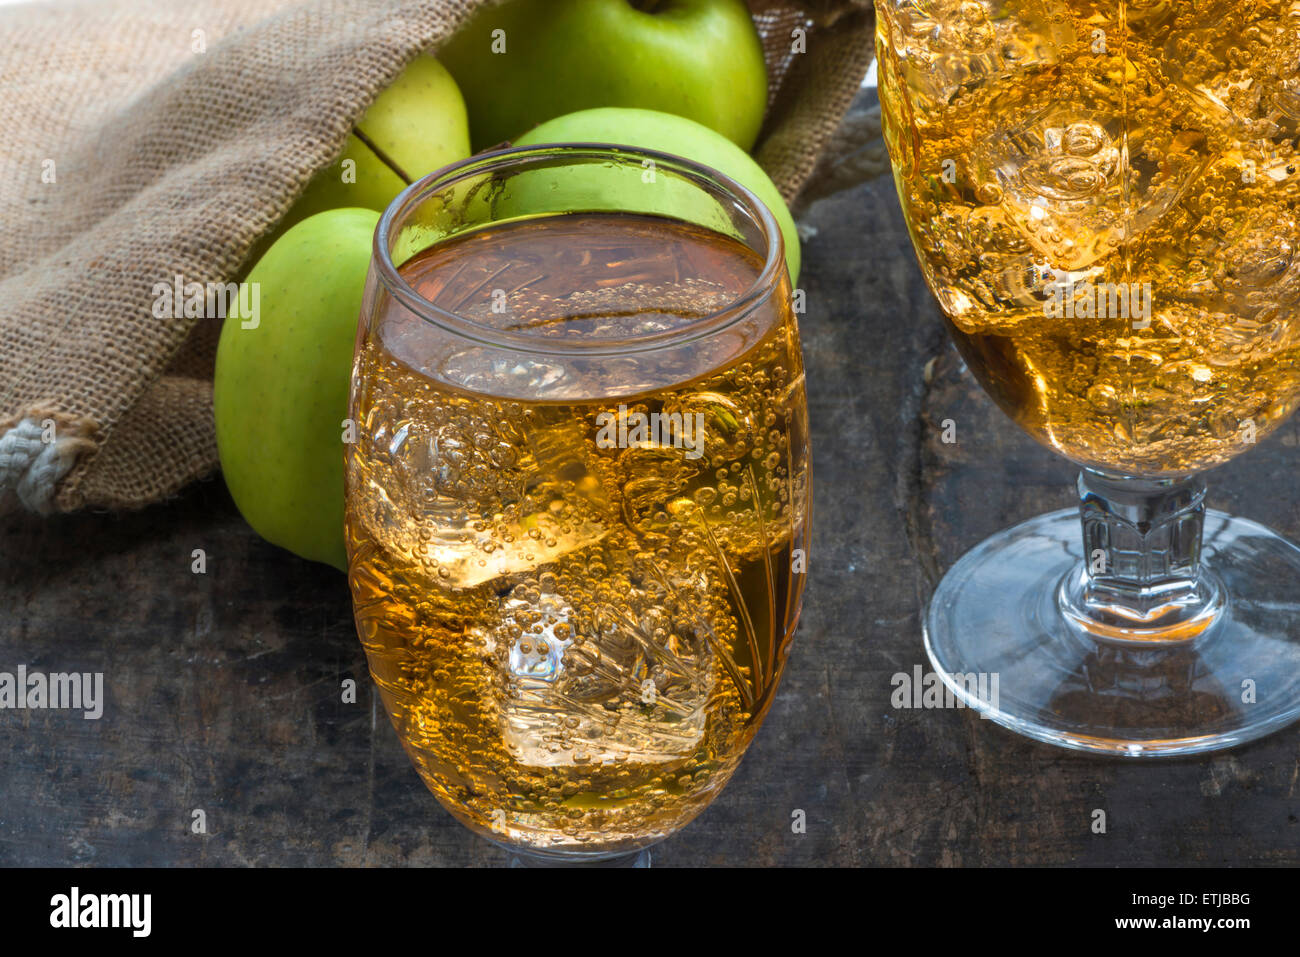 Holztisch Glas Glass Ice Cold Cider Apples Stockfotos And Glass Ice Cold